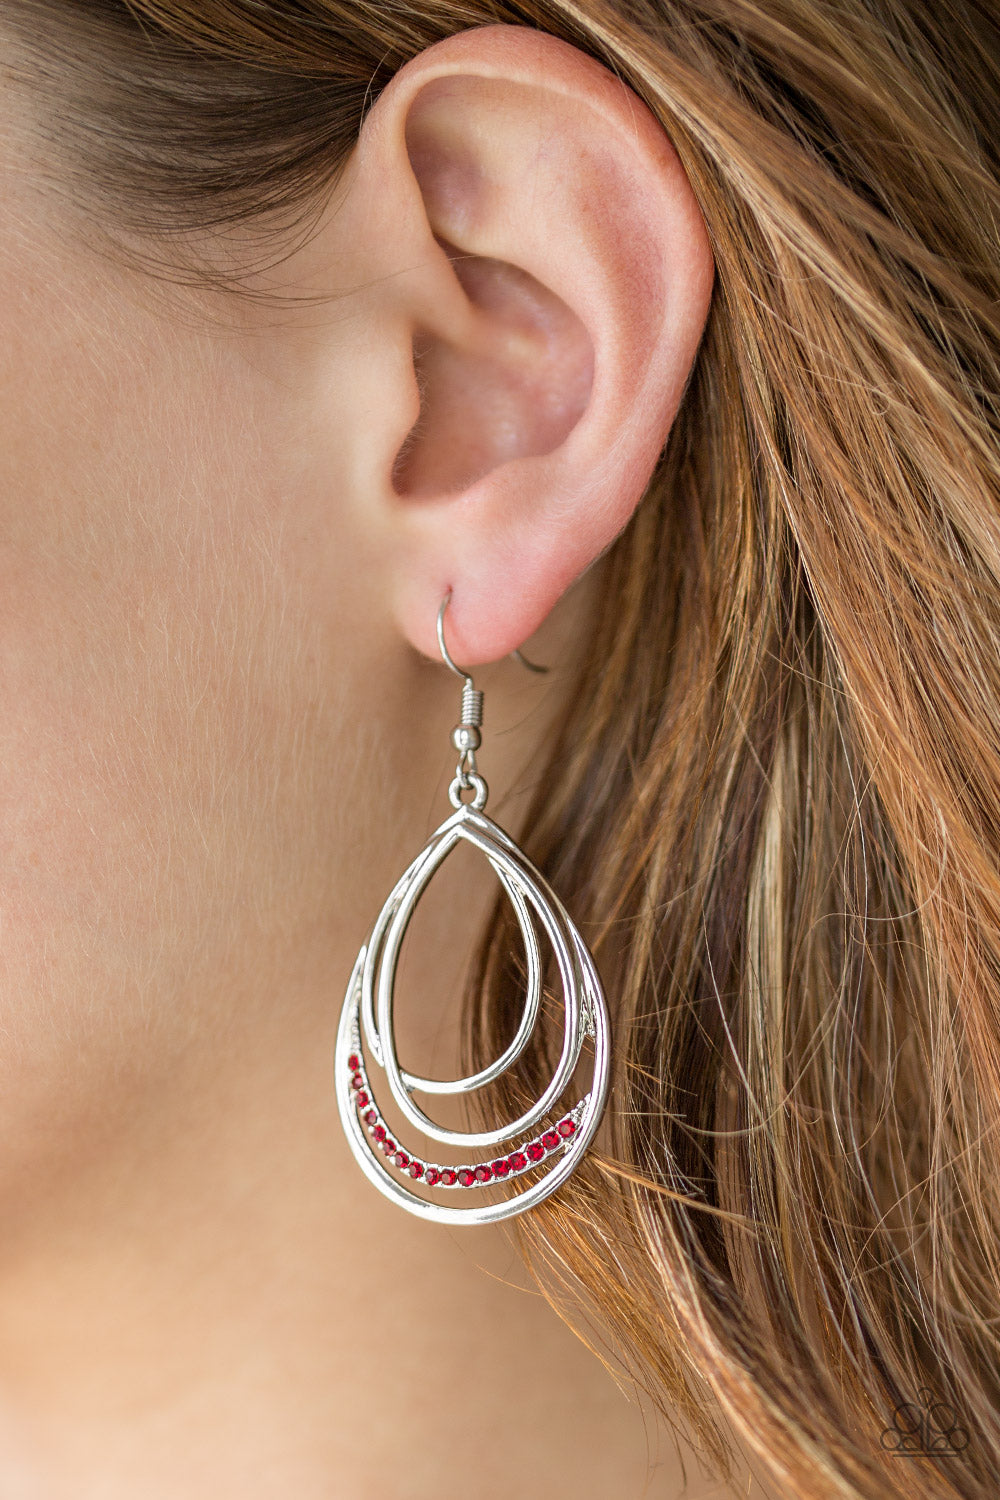 Shiny silver frames layer into an asymmetrical teardrop. A ribbon of glittery red rhinestones wraps around the bottom for a refined finish. Earring attaches to a standard fishhook fitting.  Sold as one pair of earrings.  Always nickel and lead free.